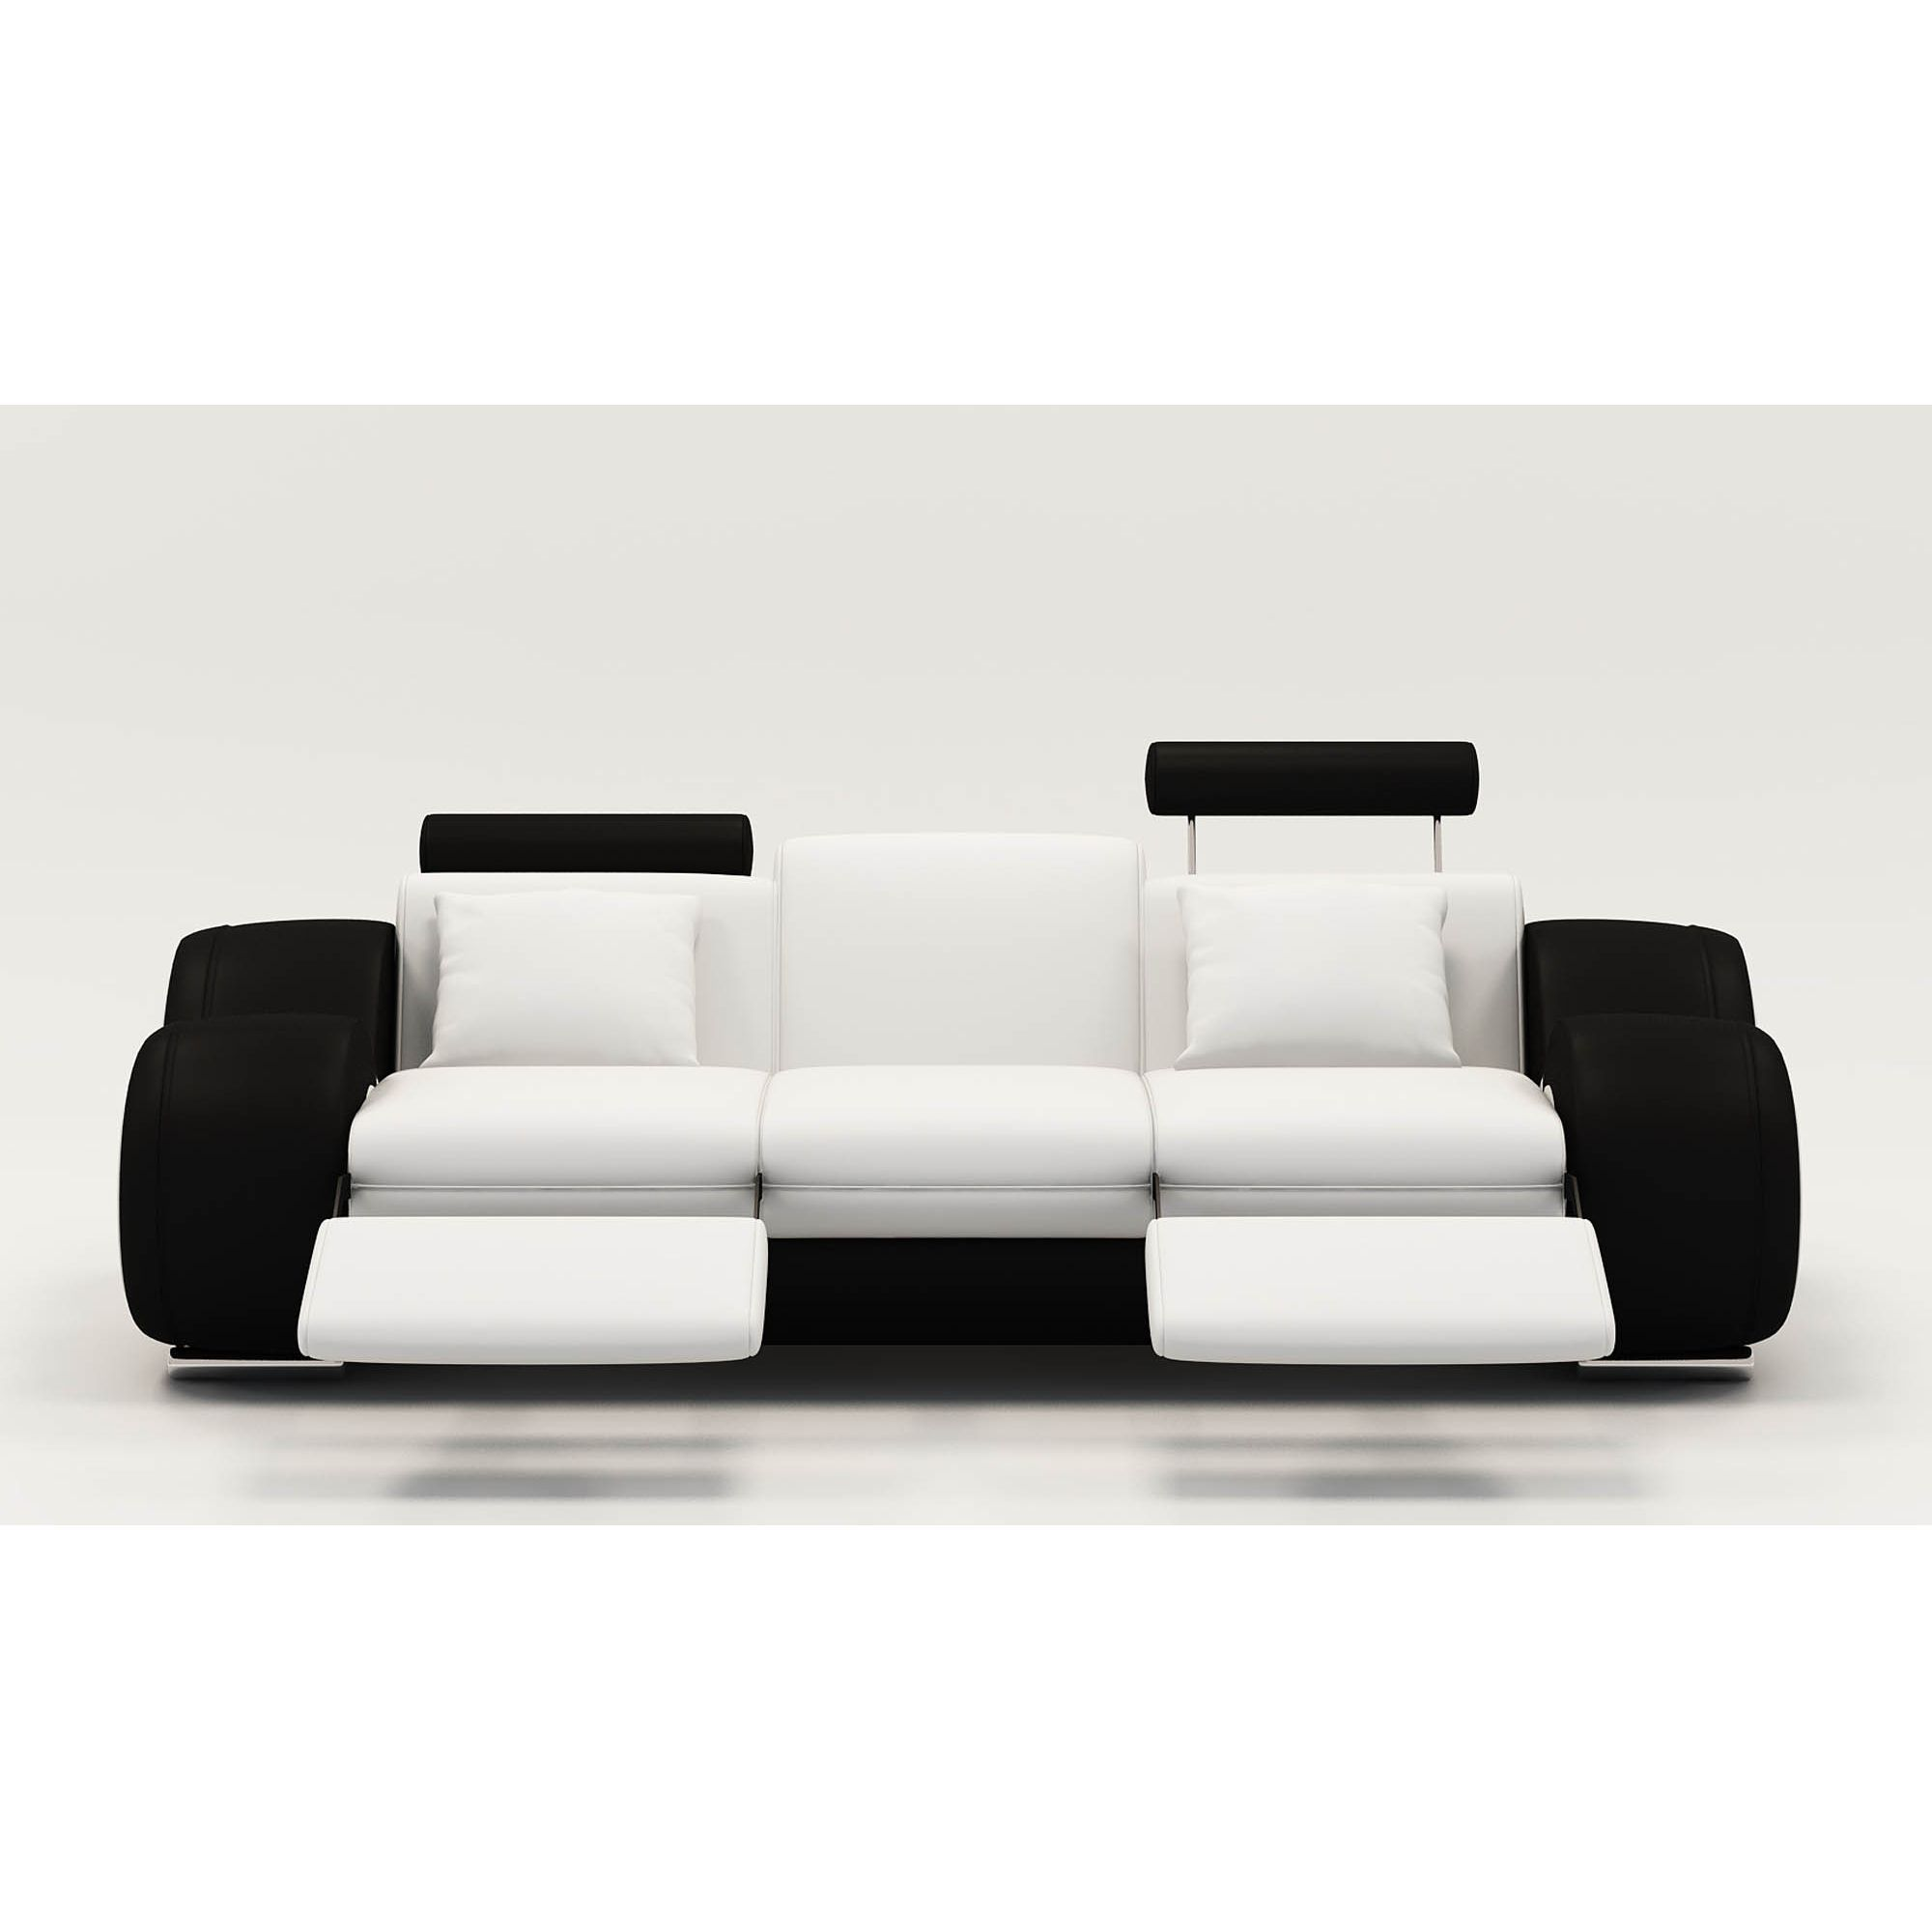 Deco in paris ensemble canape relax design 3 2 places - Canape 2 places relax ...